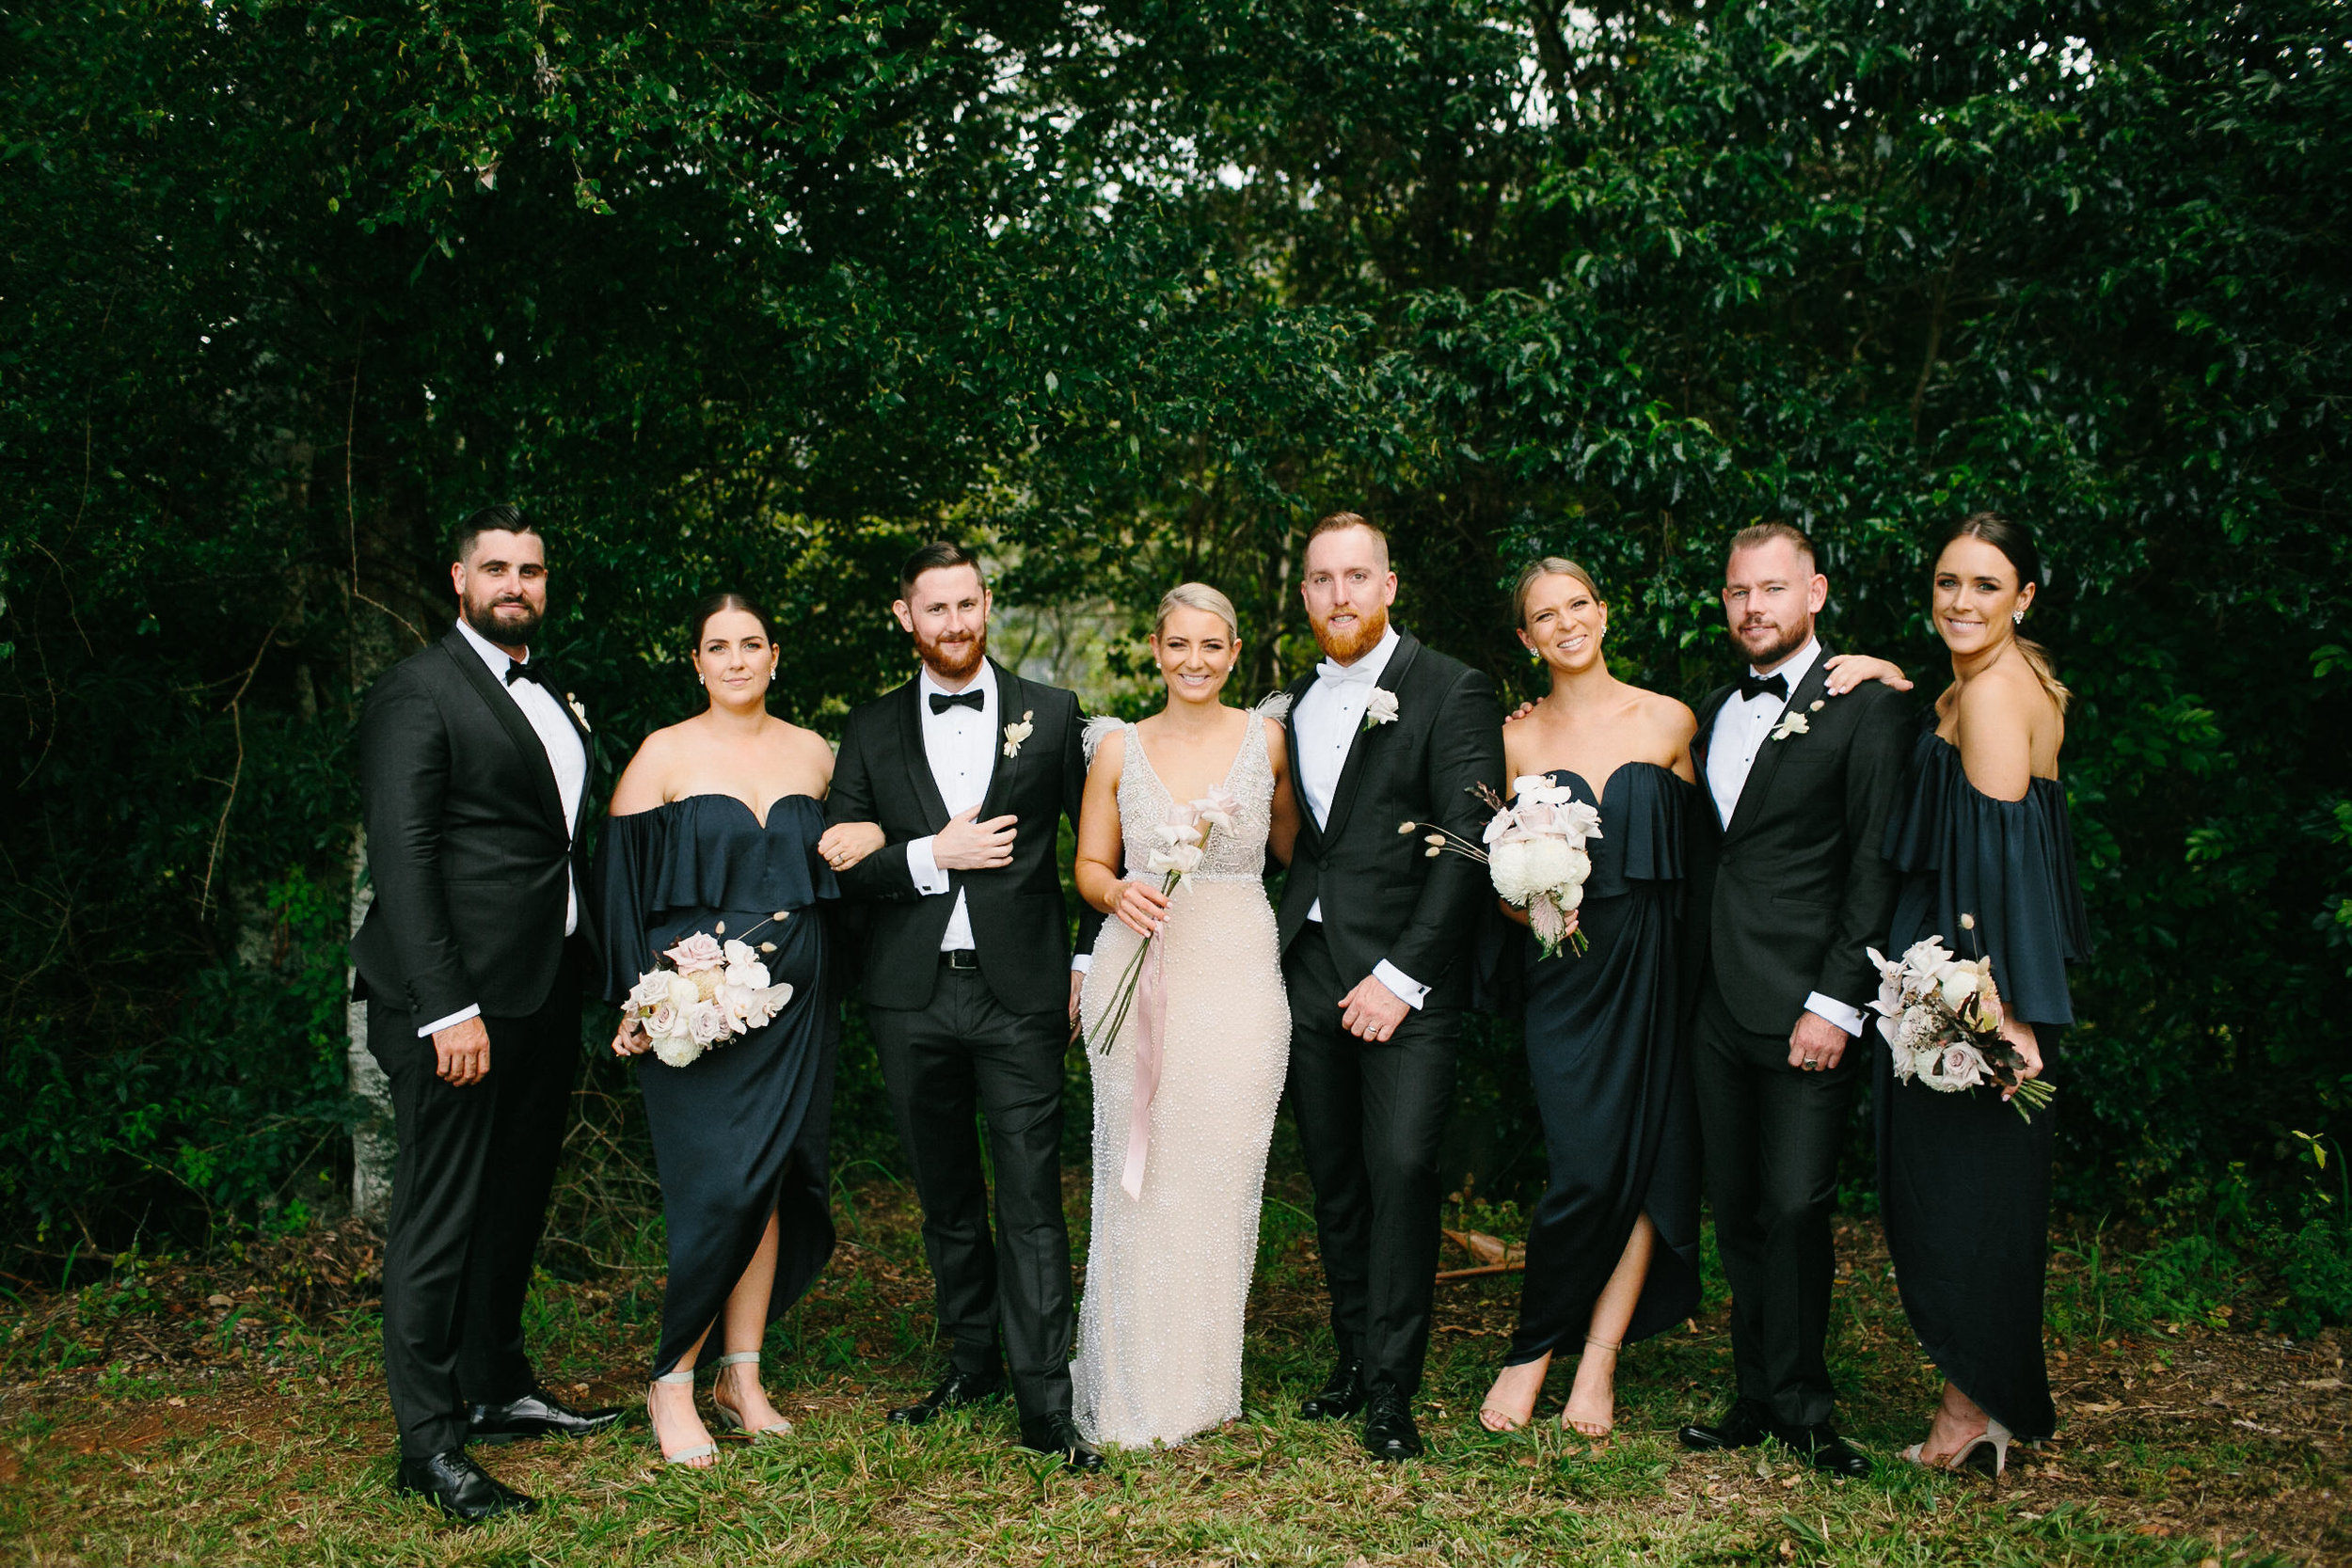 Bloodwood Botanica | Bridal Party byron bay wedding flowers